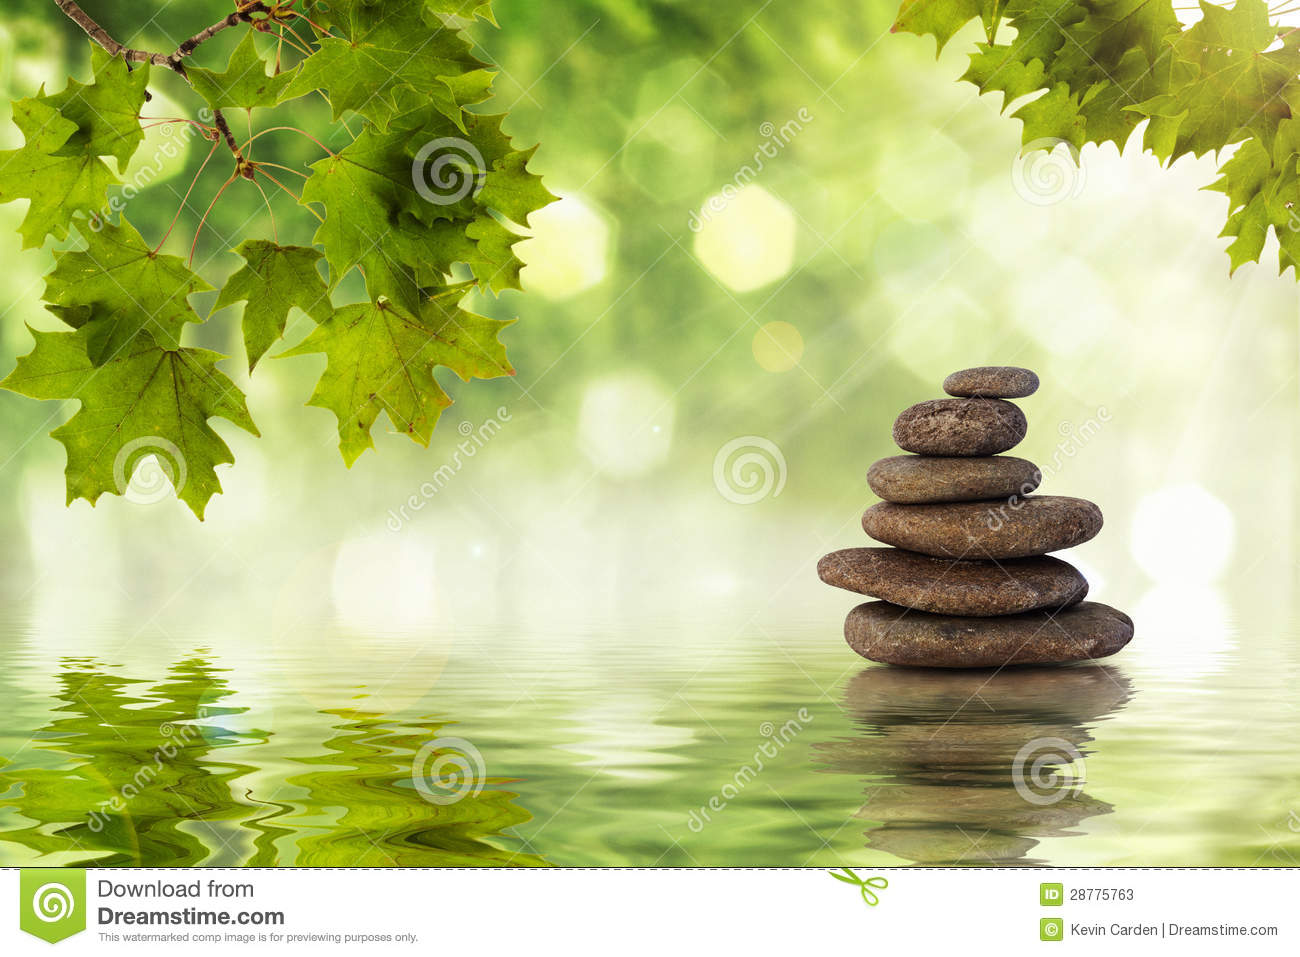 Zen rocks standing in water with ripples.